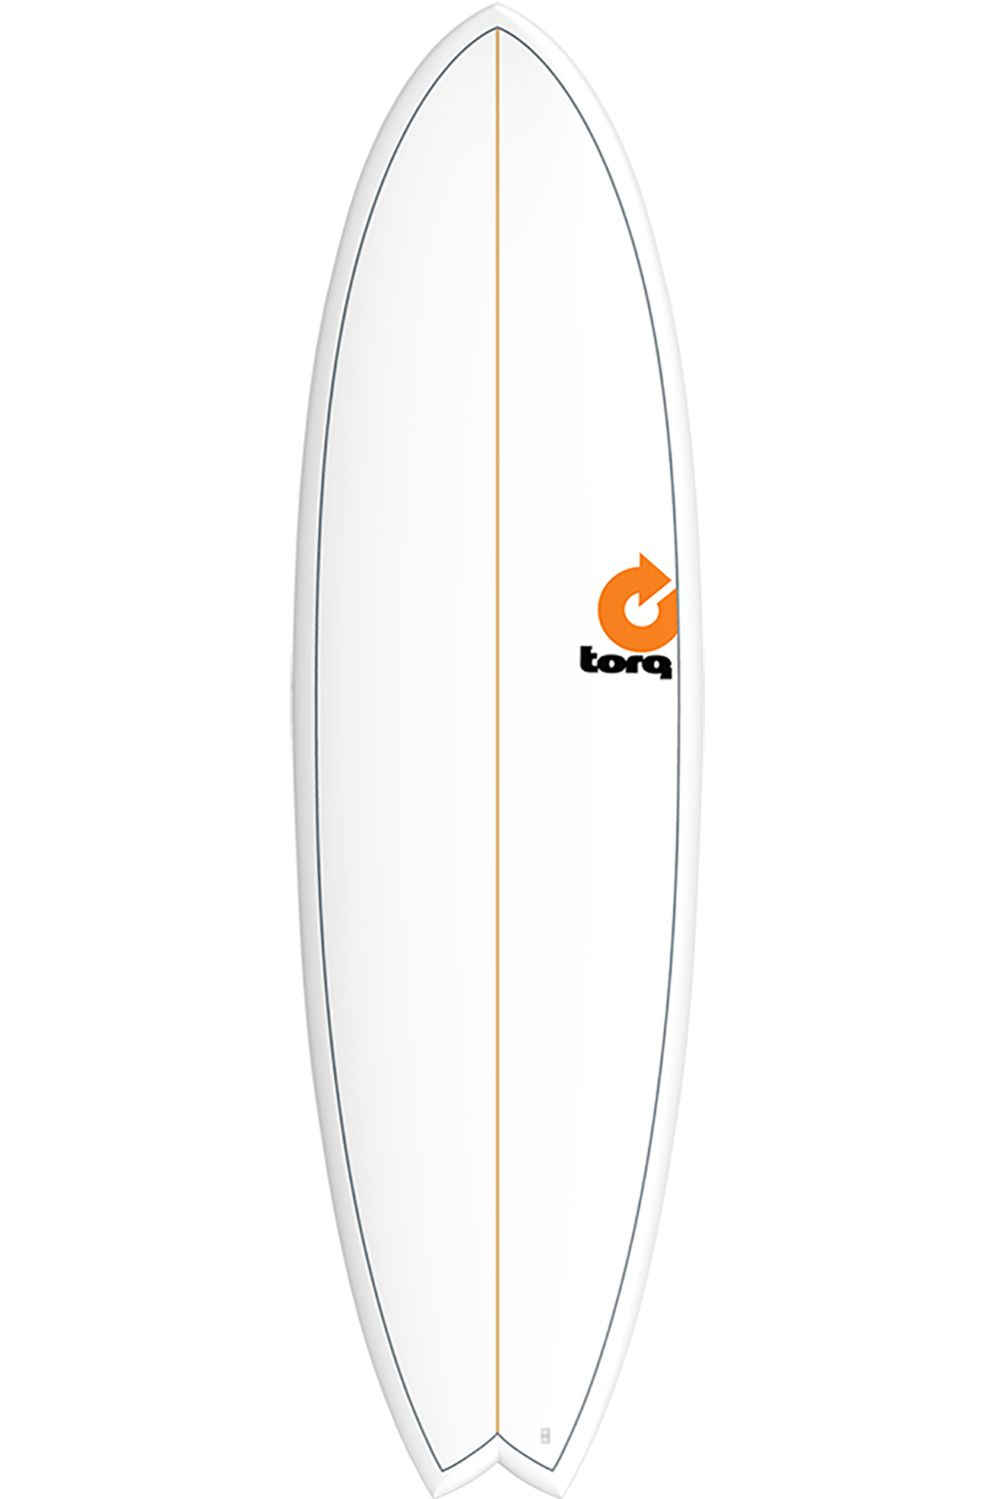 Torq Surf Board 7'2 MOD FISH WHITE + PINLINE Swallow Tail - White Futures Multisystem 7ft2